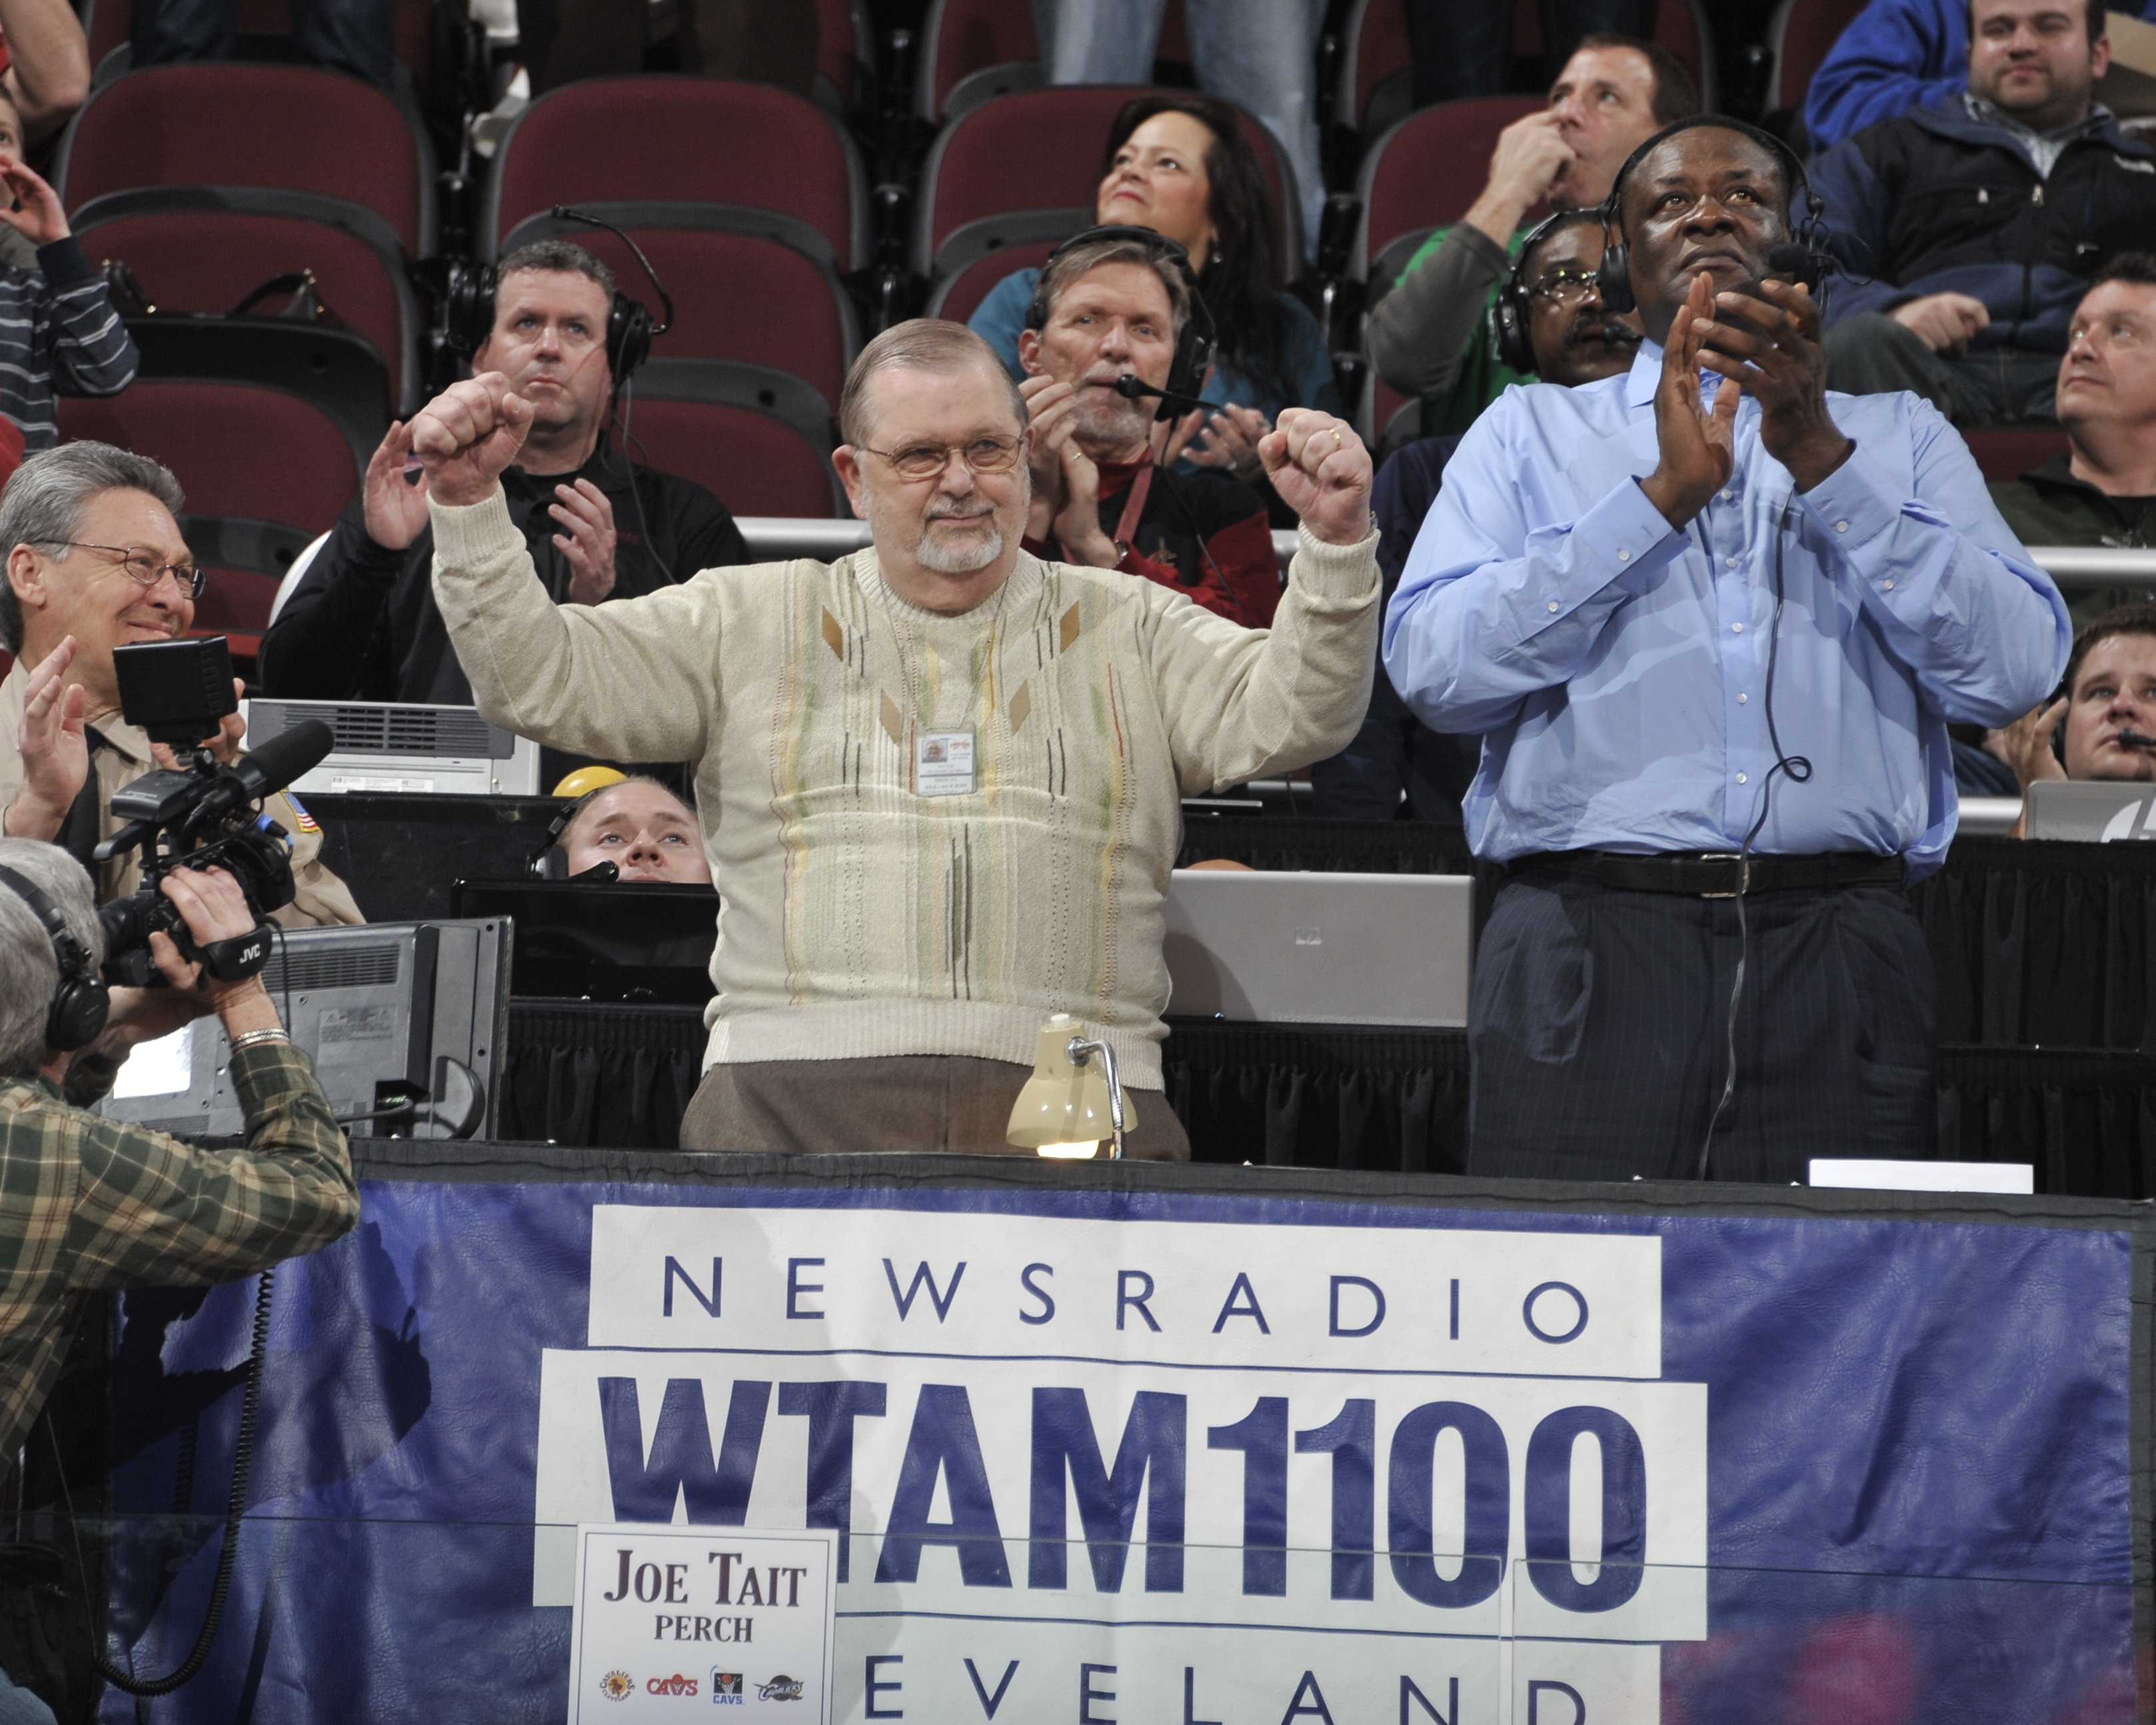 Joe Tait on his Appreciation Night during a game between the Chicago Bulls and the Cleveland Cavaliers on April 8, 2011, in Cleveland, Ohio   Photo: David Liam Kyle/NBAE/Getty Images